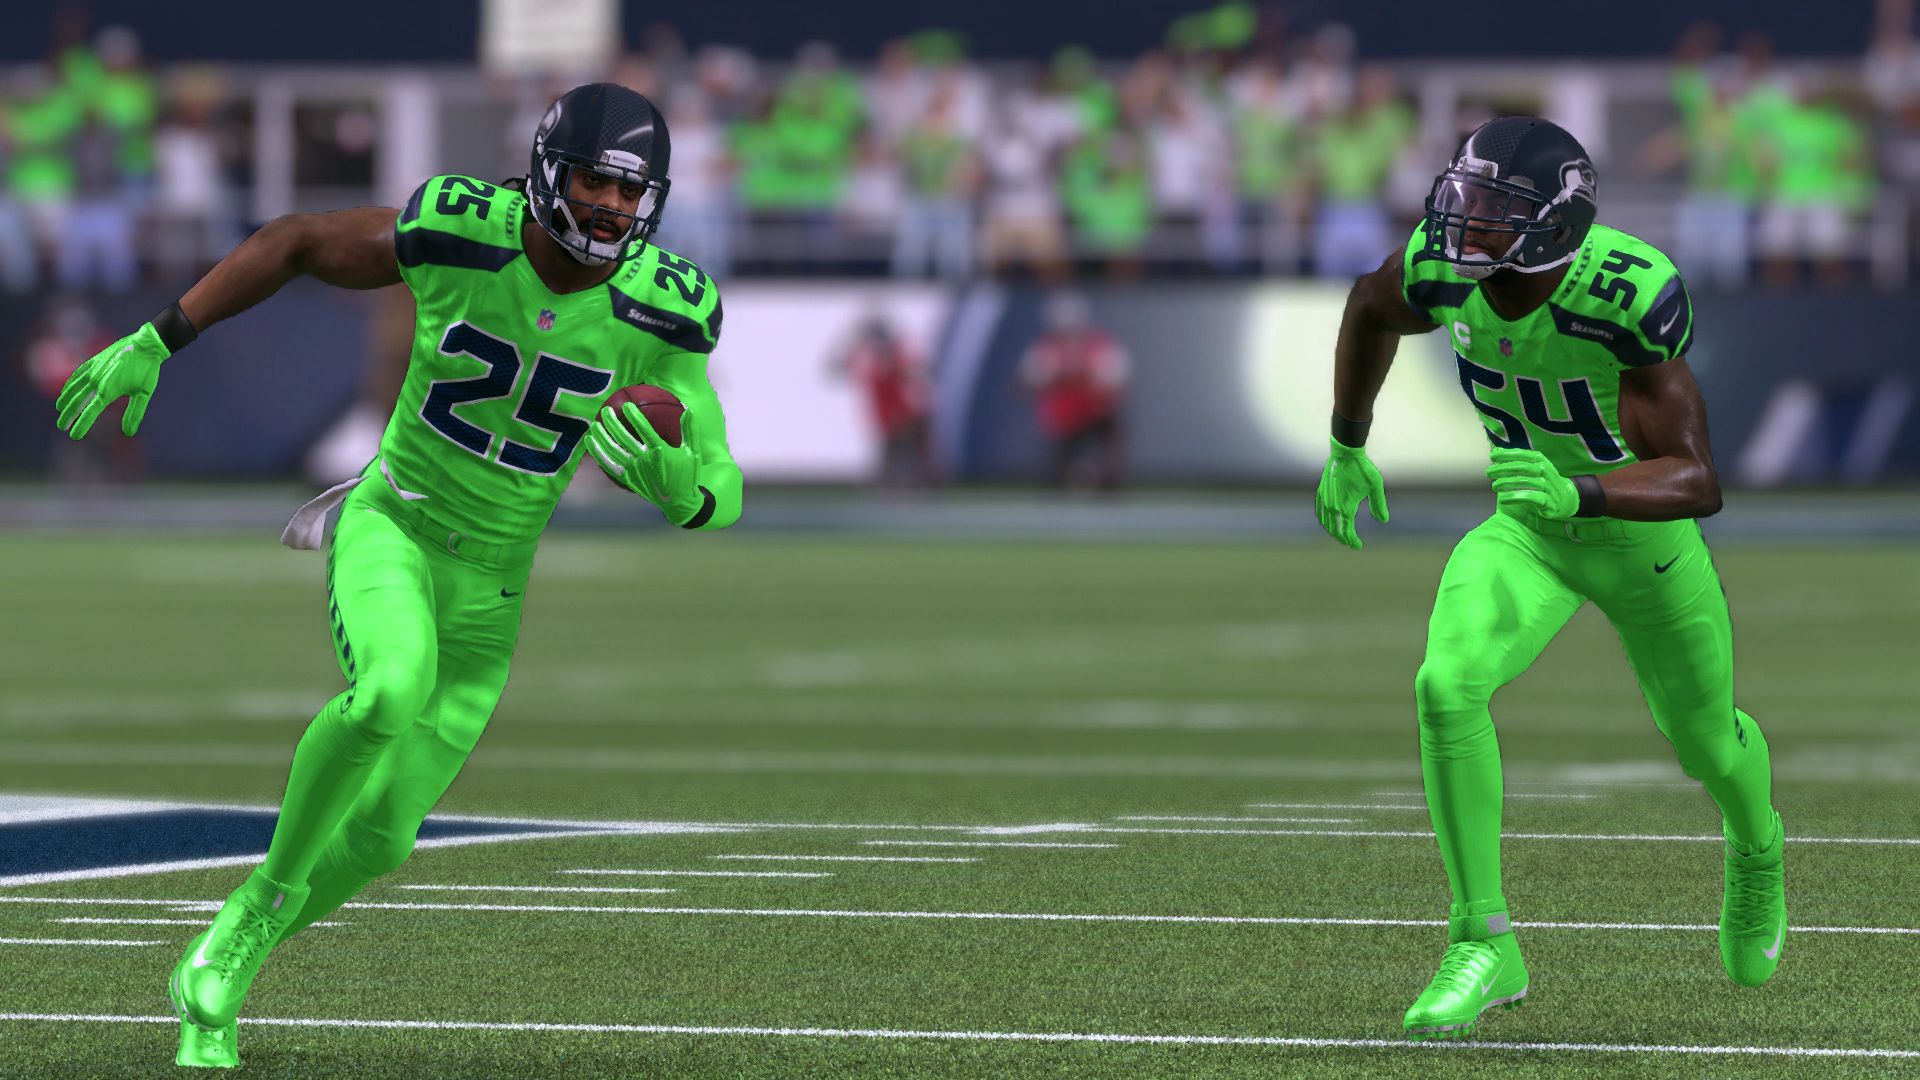 seahawks color rush jersey